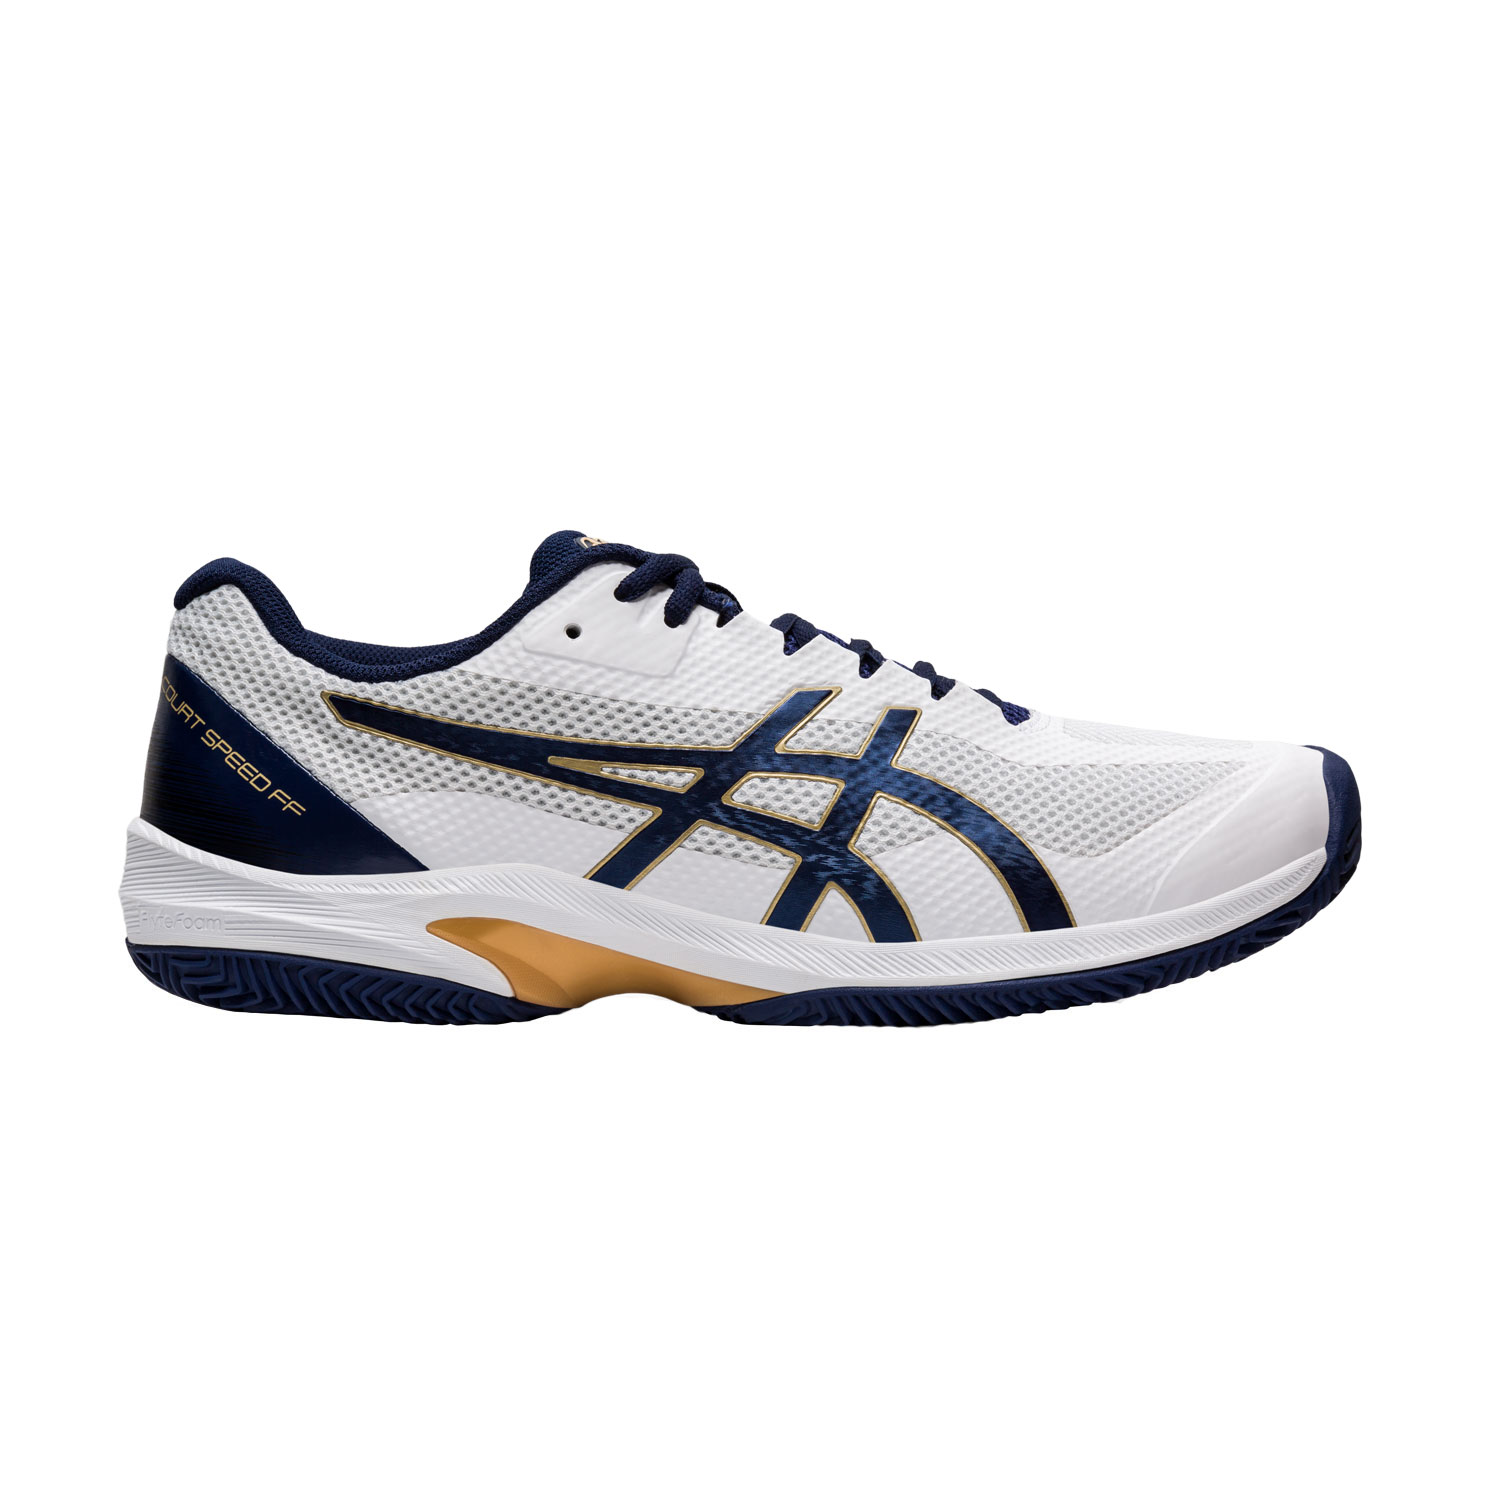 Buy mens asics tennis shoes,up to 46% Discounts